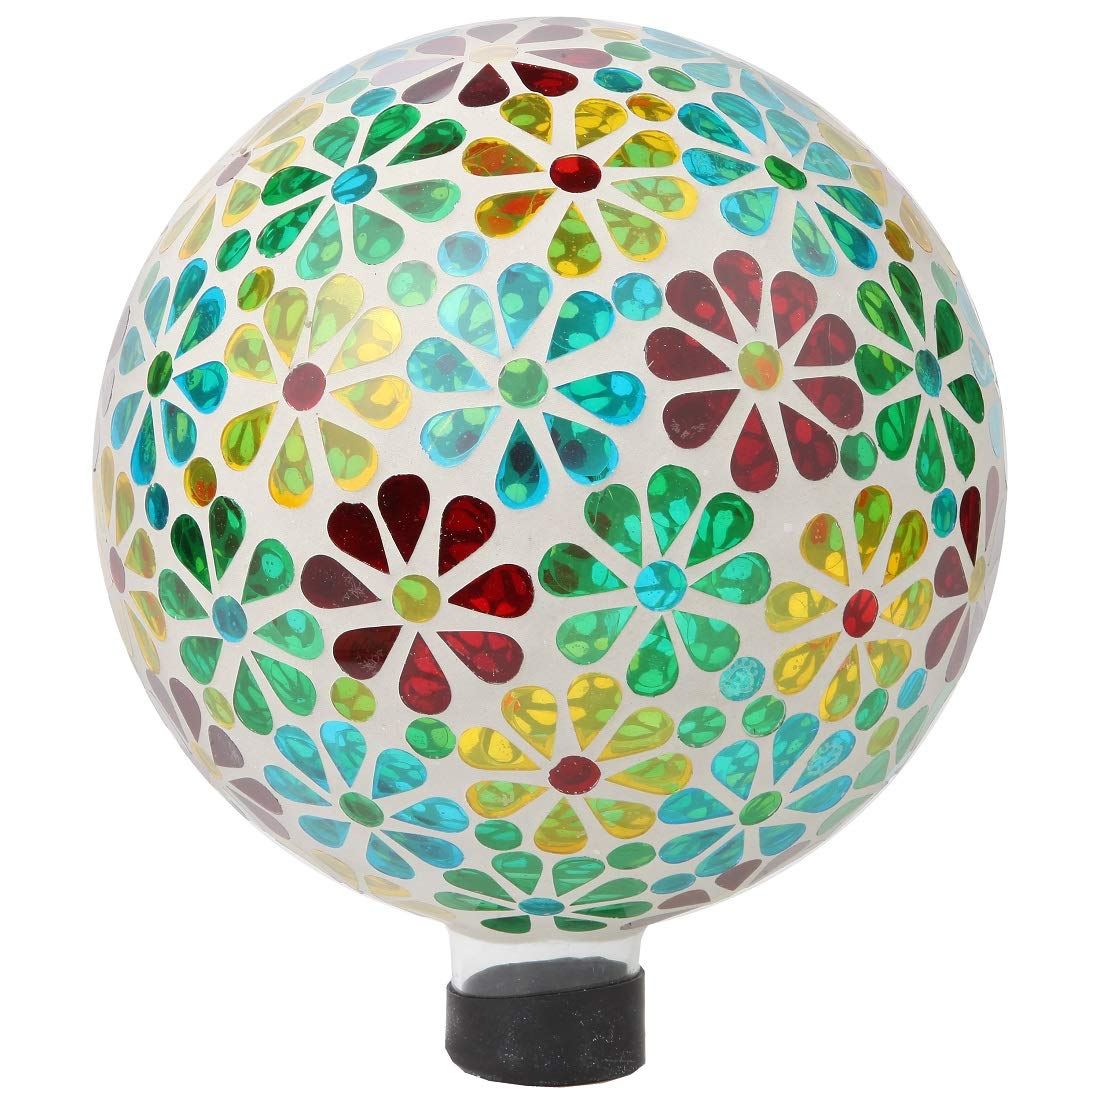 Lily's Home Colorful Mosaic Glass Gazing Ball, Designed with a Stunning Holographic Petal Mosaic Pattern to Bring Color to Any Home and Garden (10 Inches Dia.)